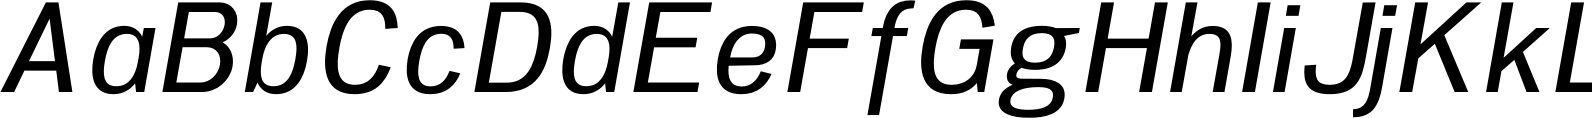 Woolworth Medium Italic Font